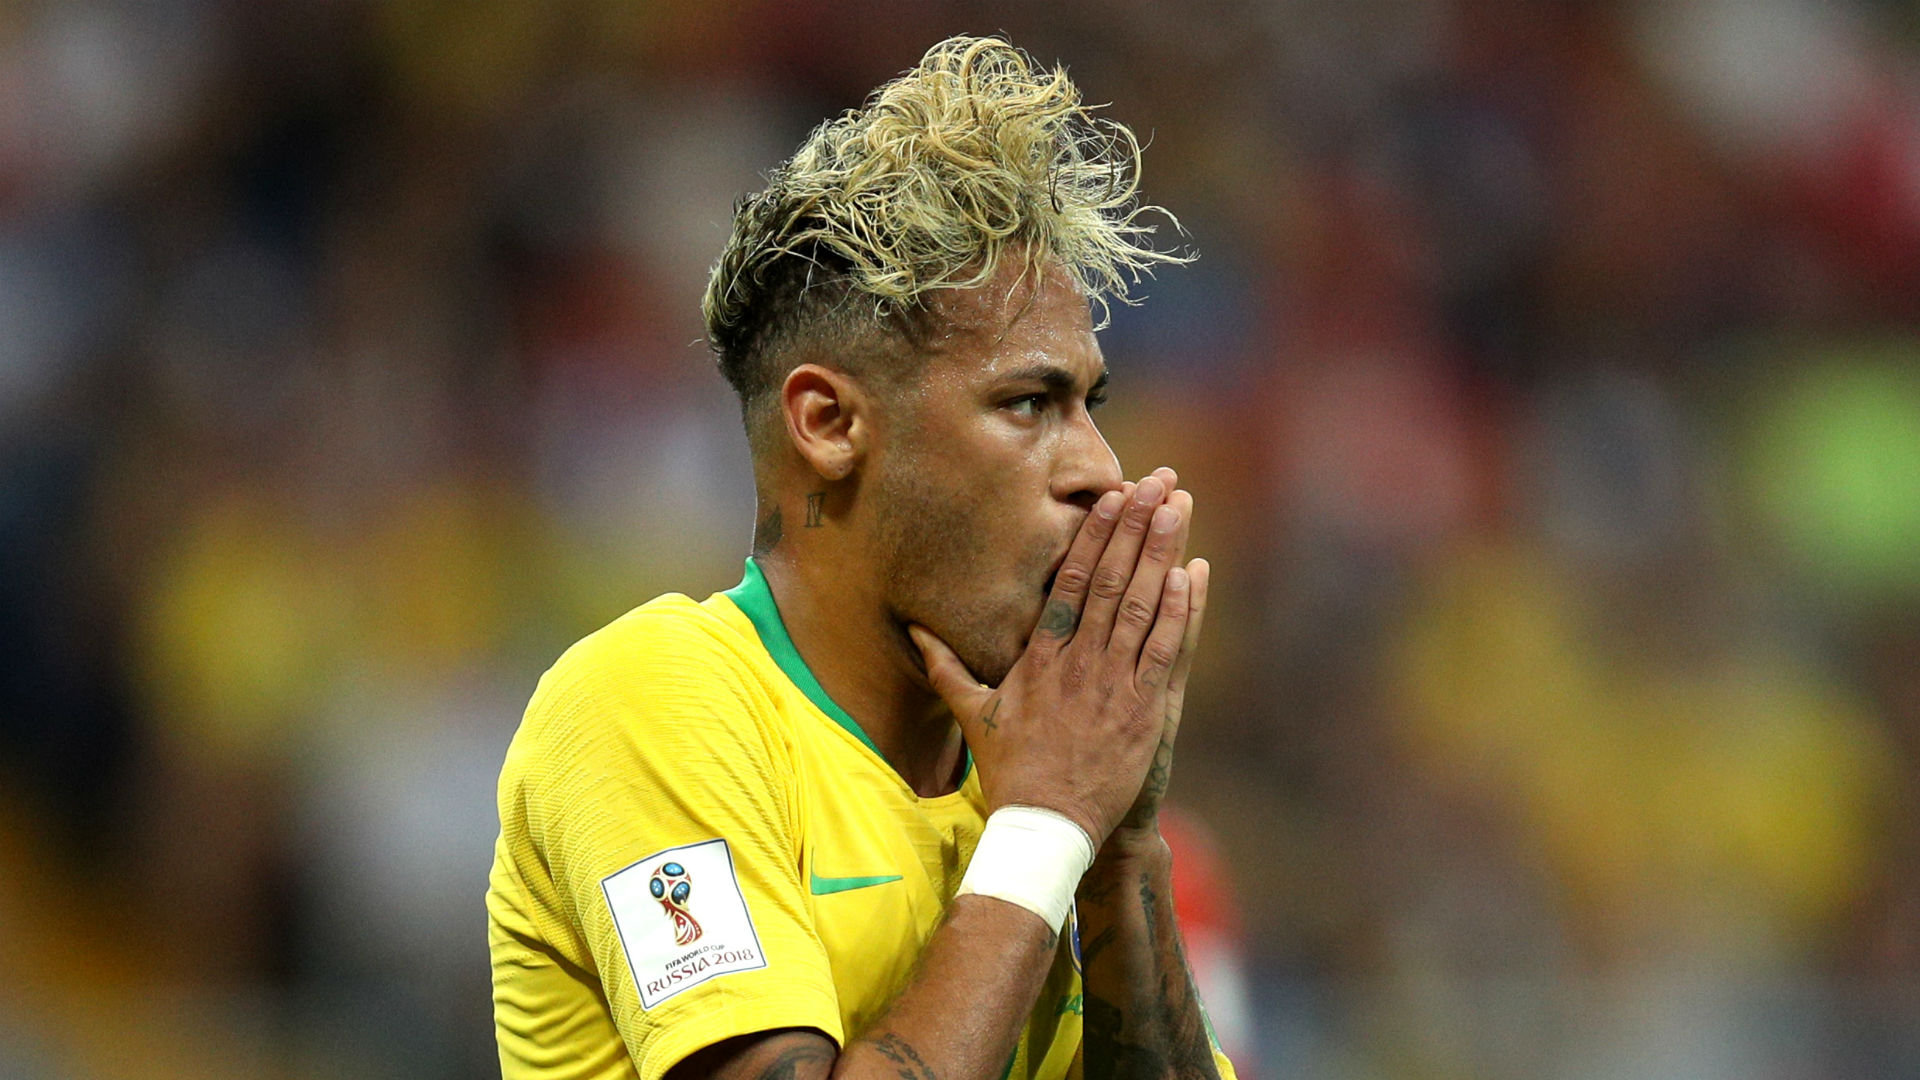 world cup 2018: brazil the latest favorite to stumble, but tite and